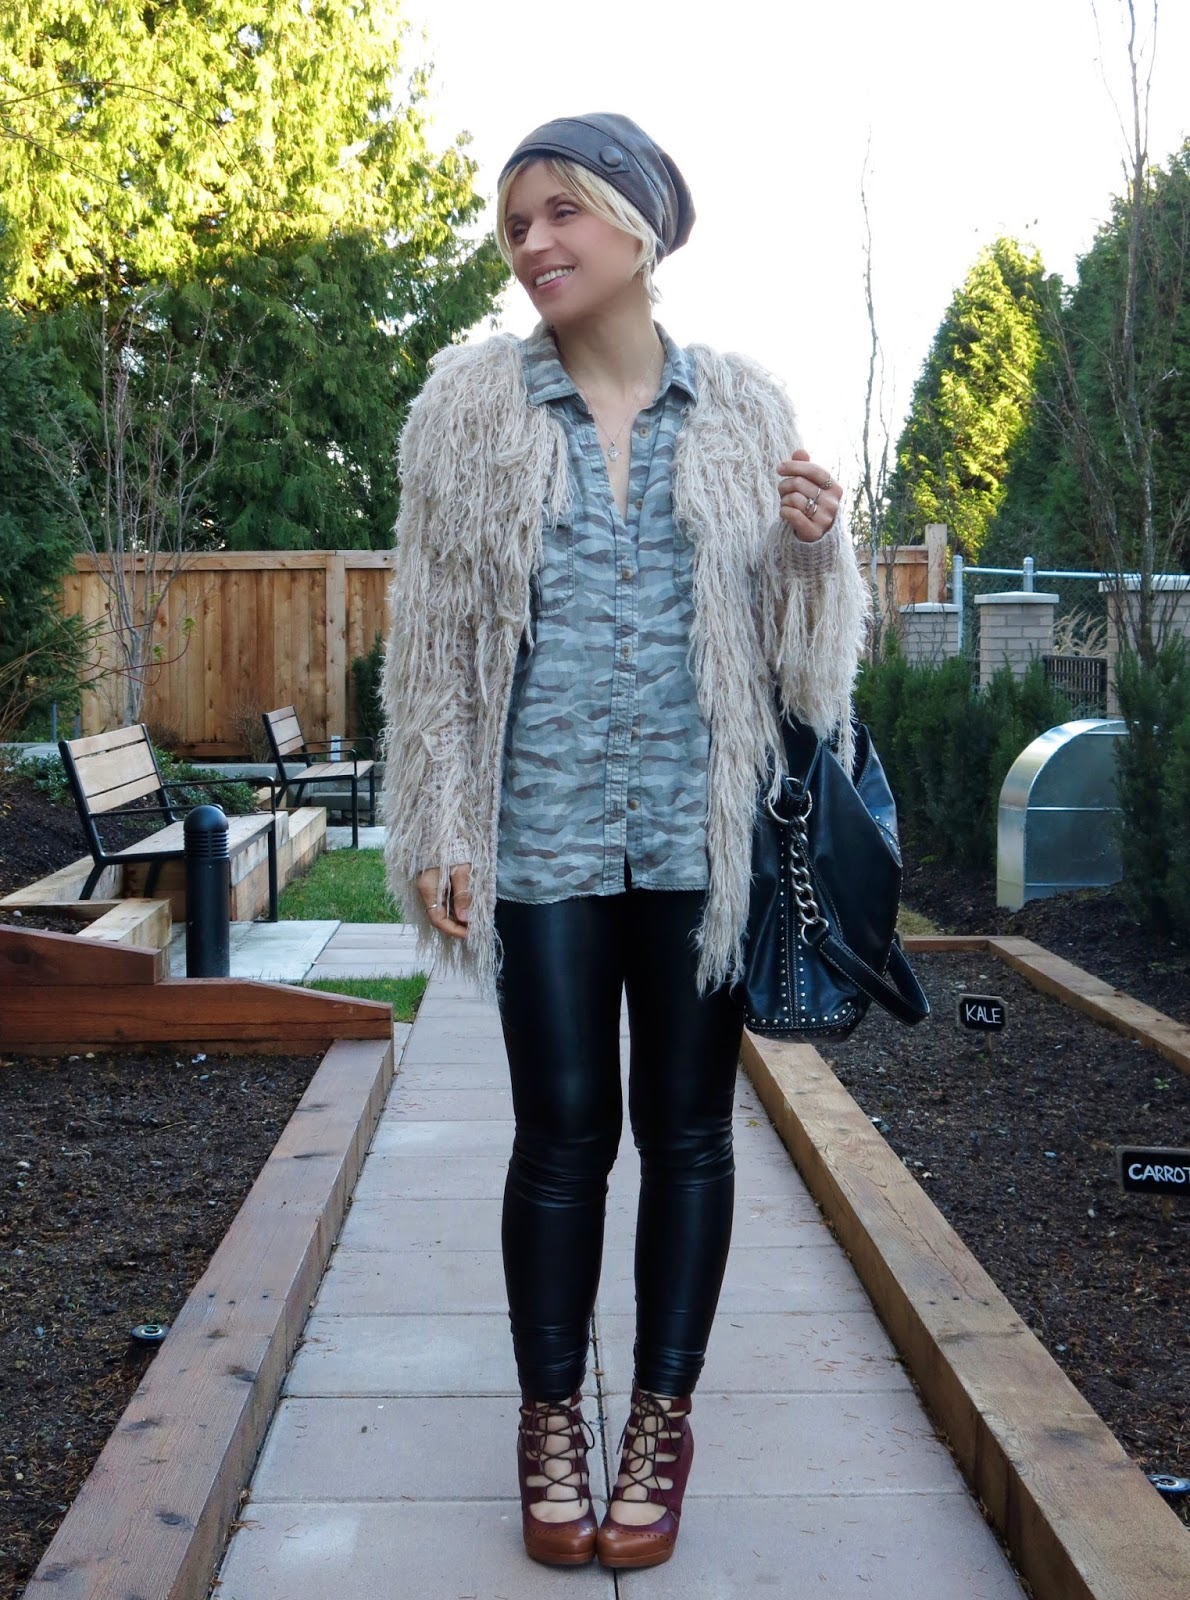 styling a shaggy cardigan with a camo shirt, leather beanie and leggings, and lace-up heels